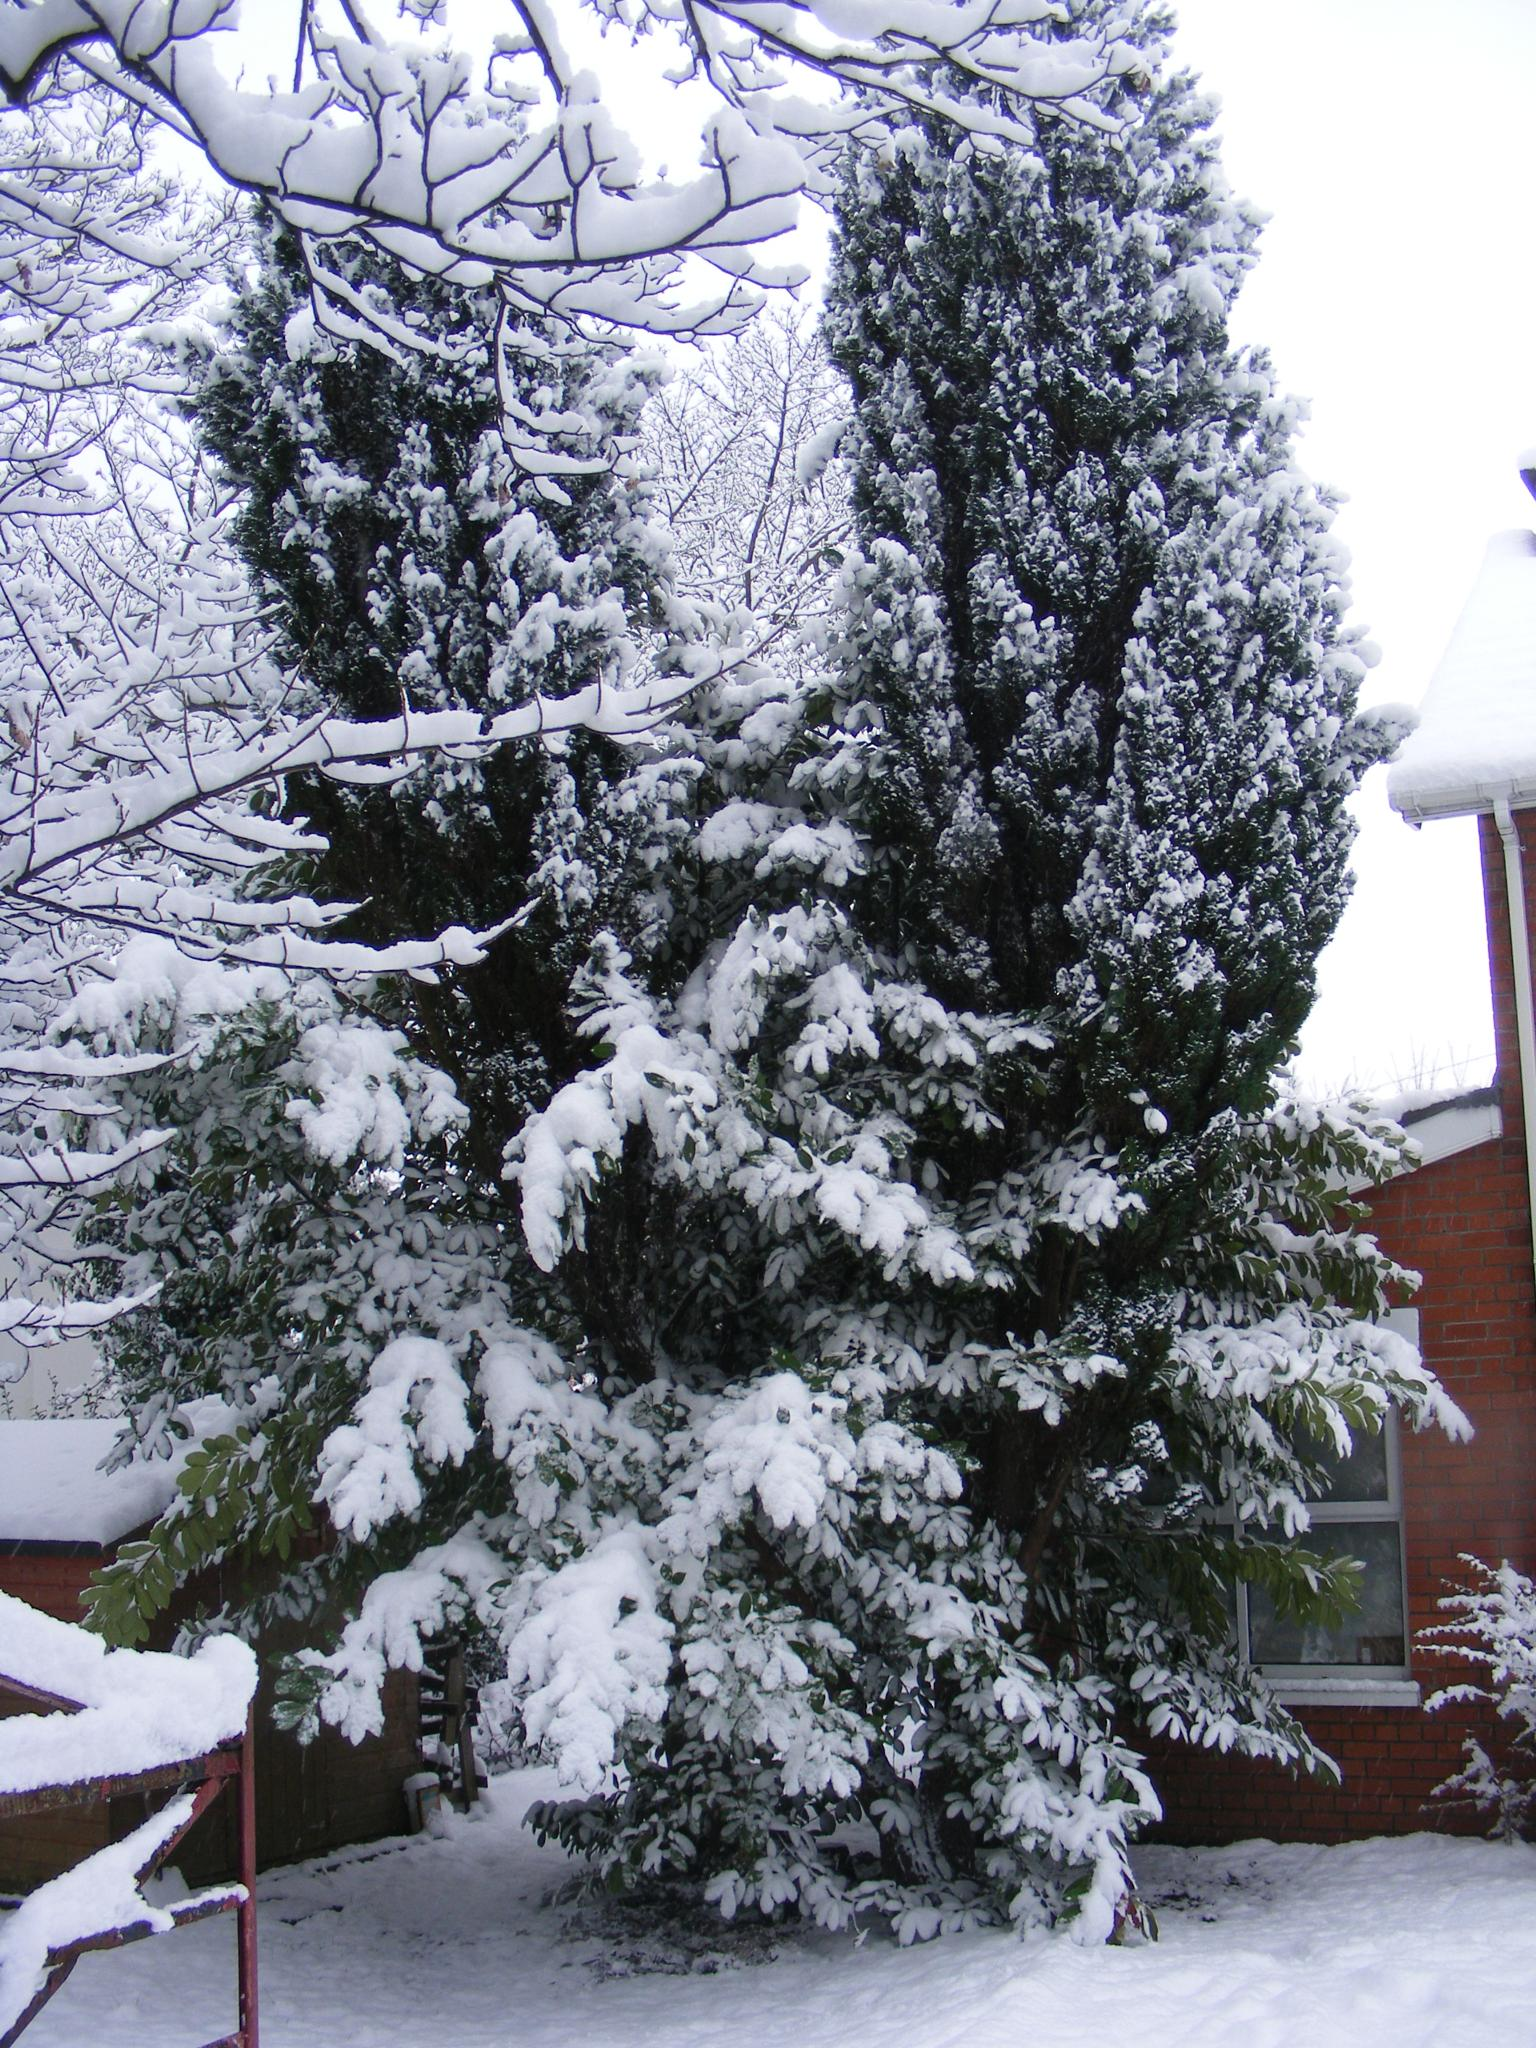 Snow on tree by andy.morrow.315